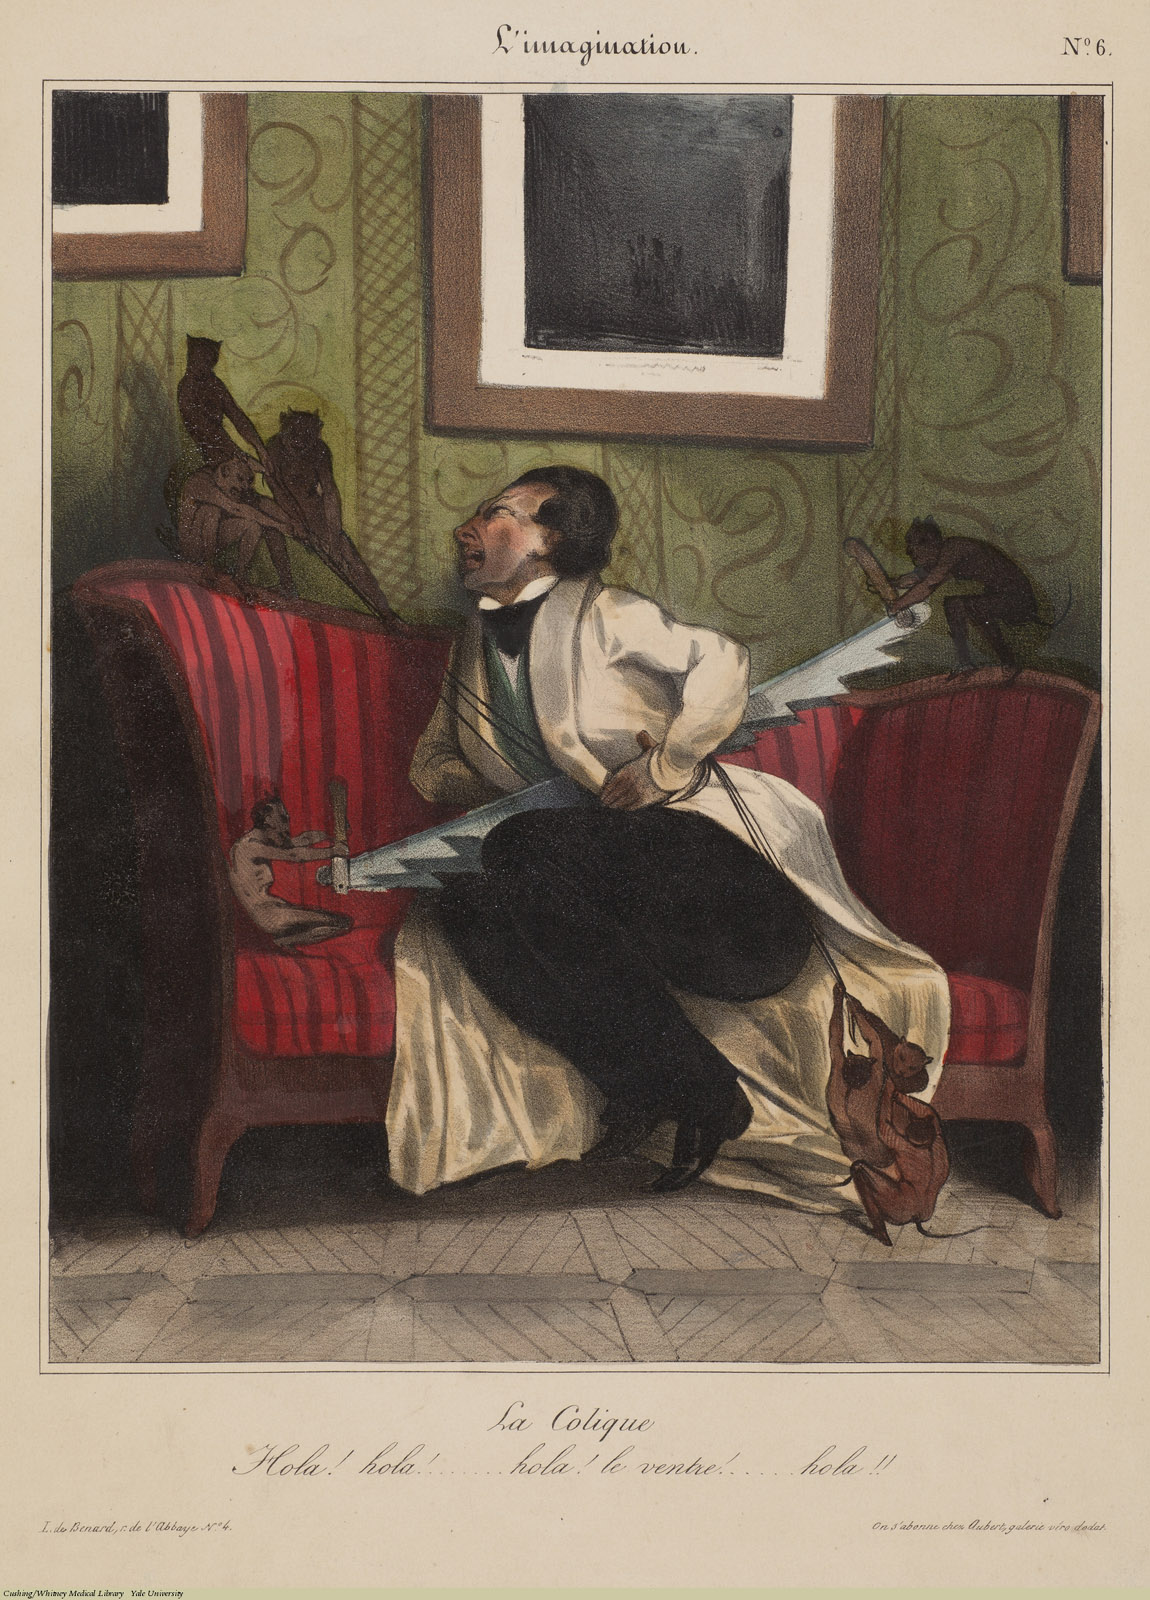 La Colique. Charles Ramelet / Honore Daumier, Lithograph coloured. Subject: Cholic, Depiction of Pain.